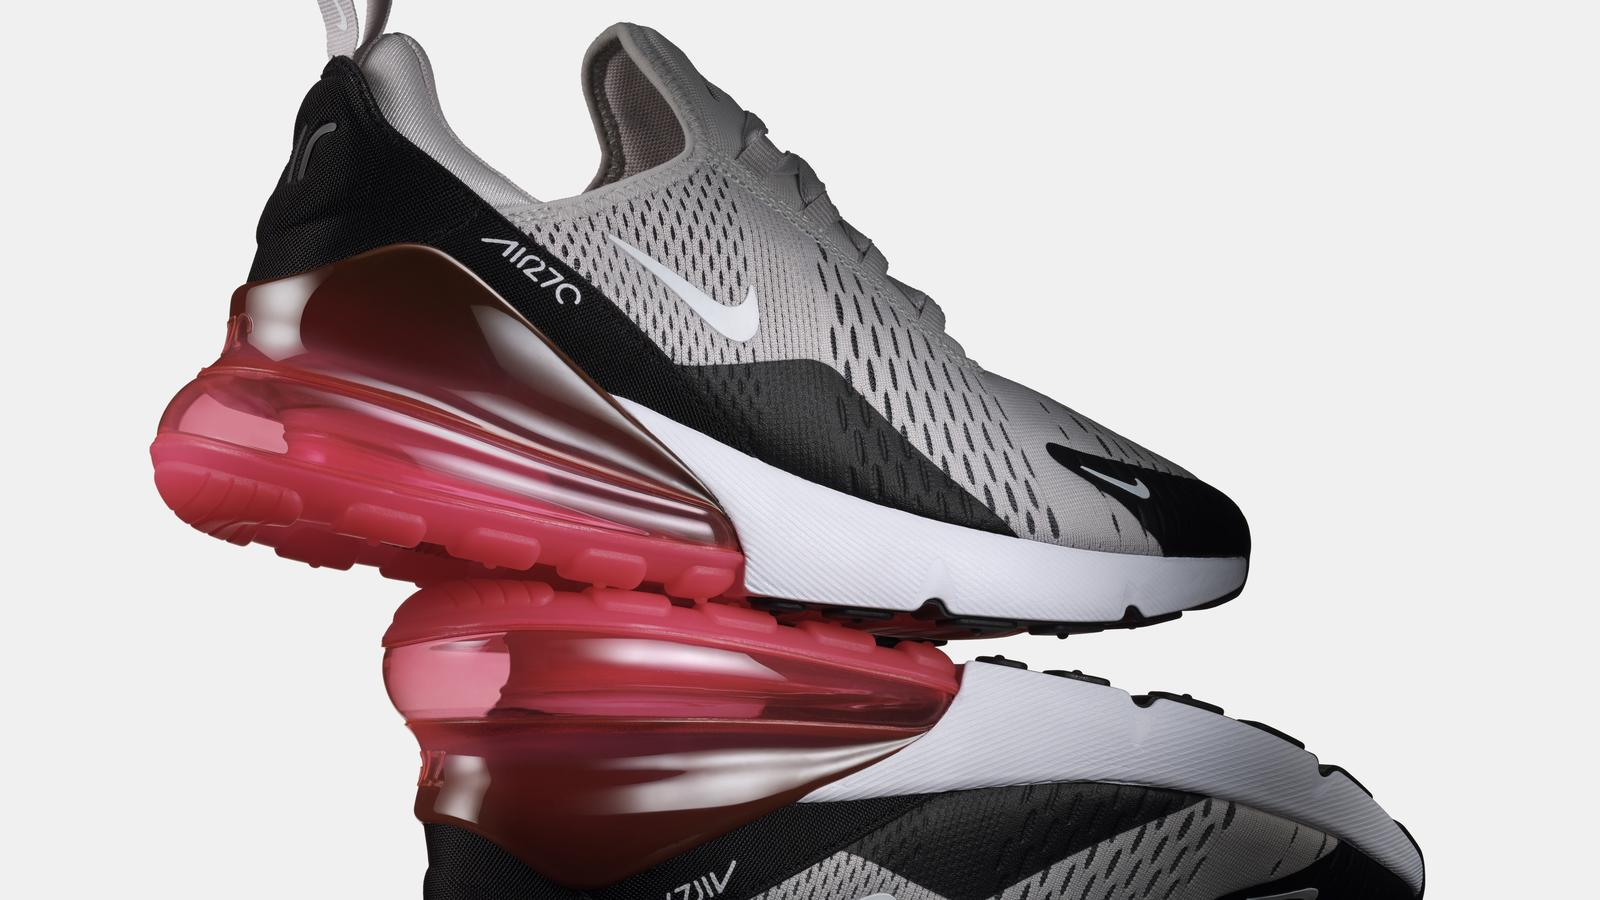 1b77addf49c50b Eight Facts About the All-New Air Max 270 - Nike News